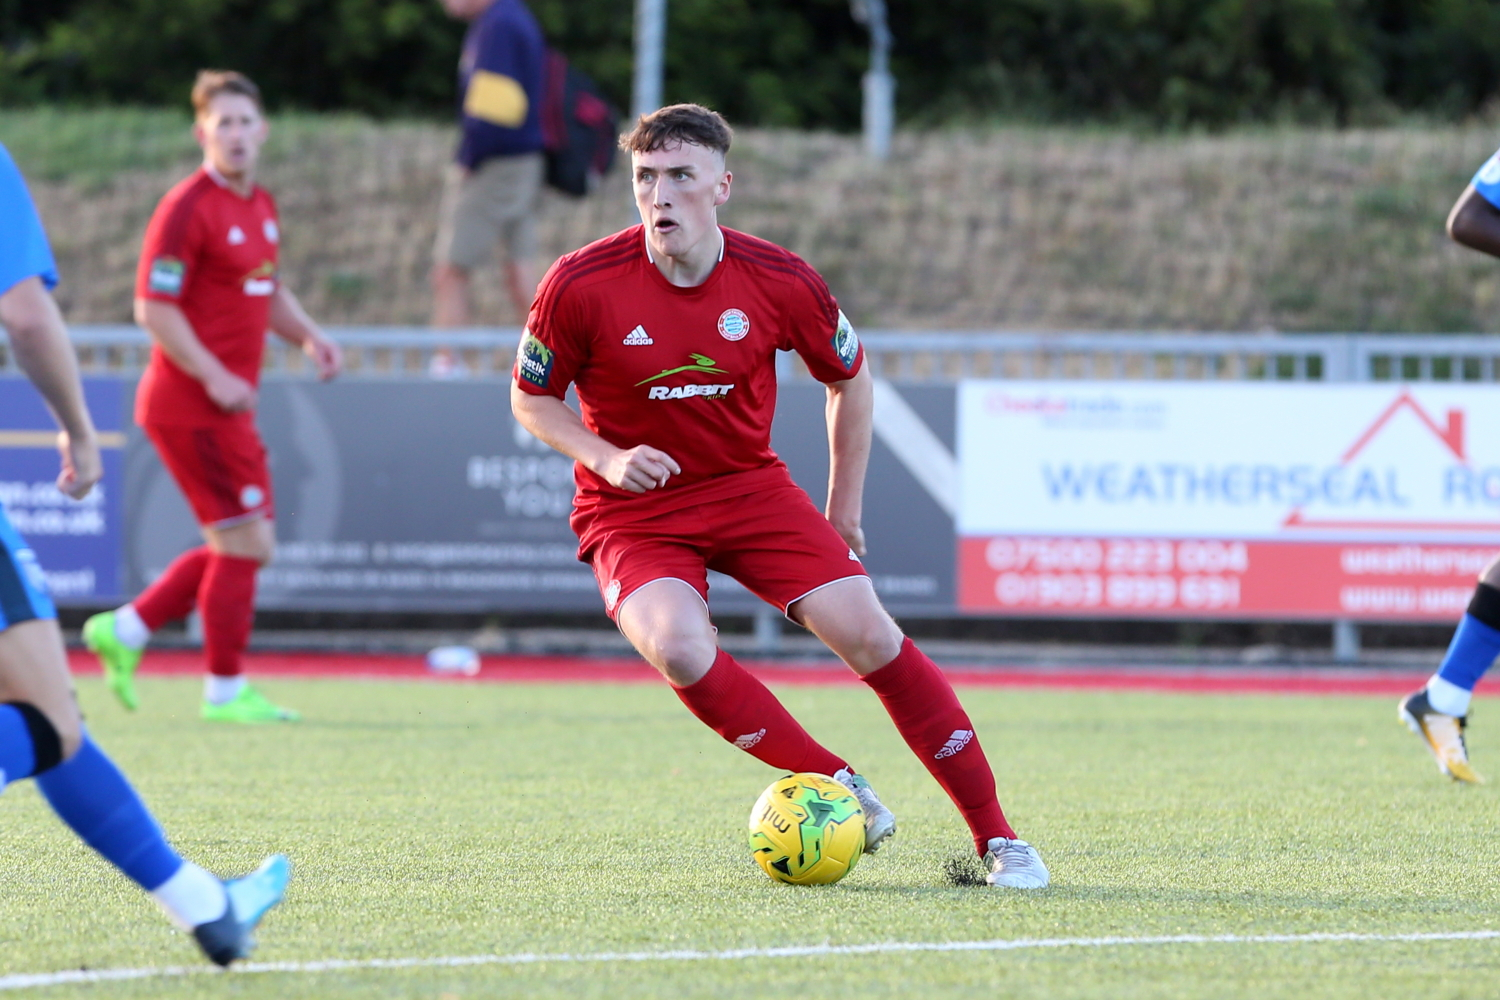 Read the full article - Returning Worthing midfielder could be crucial